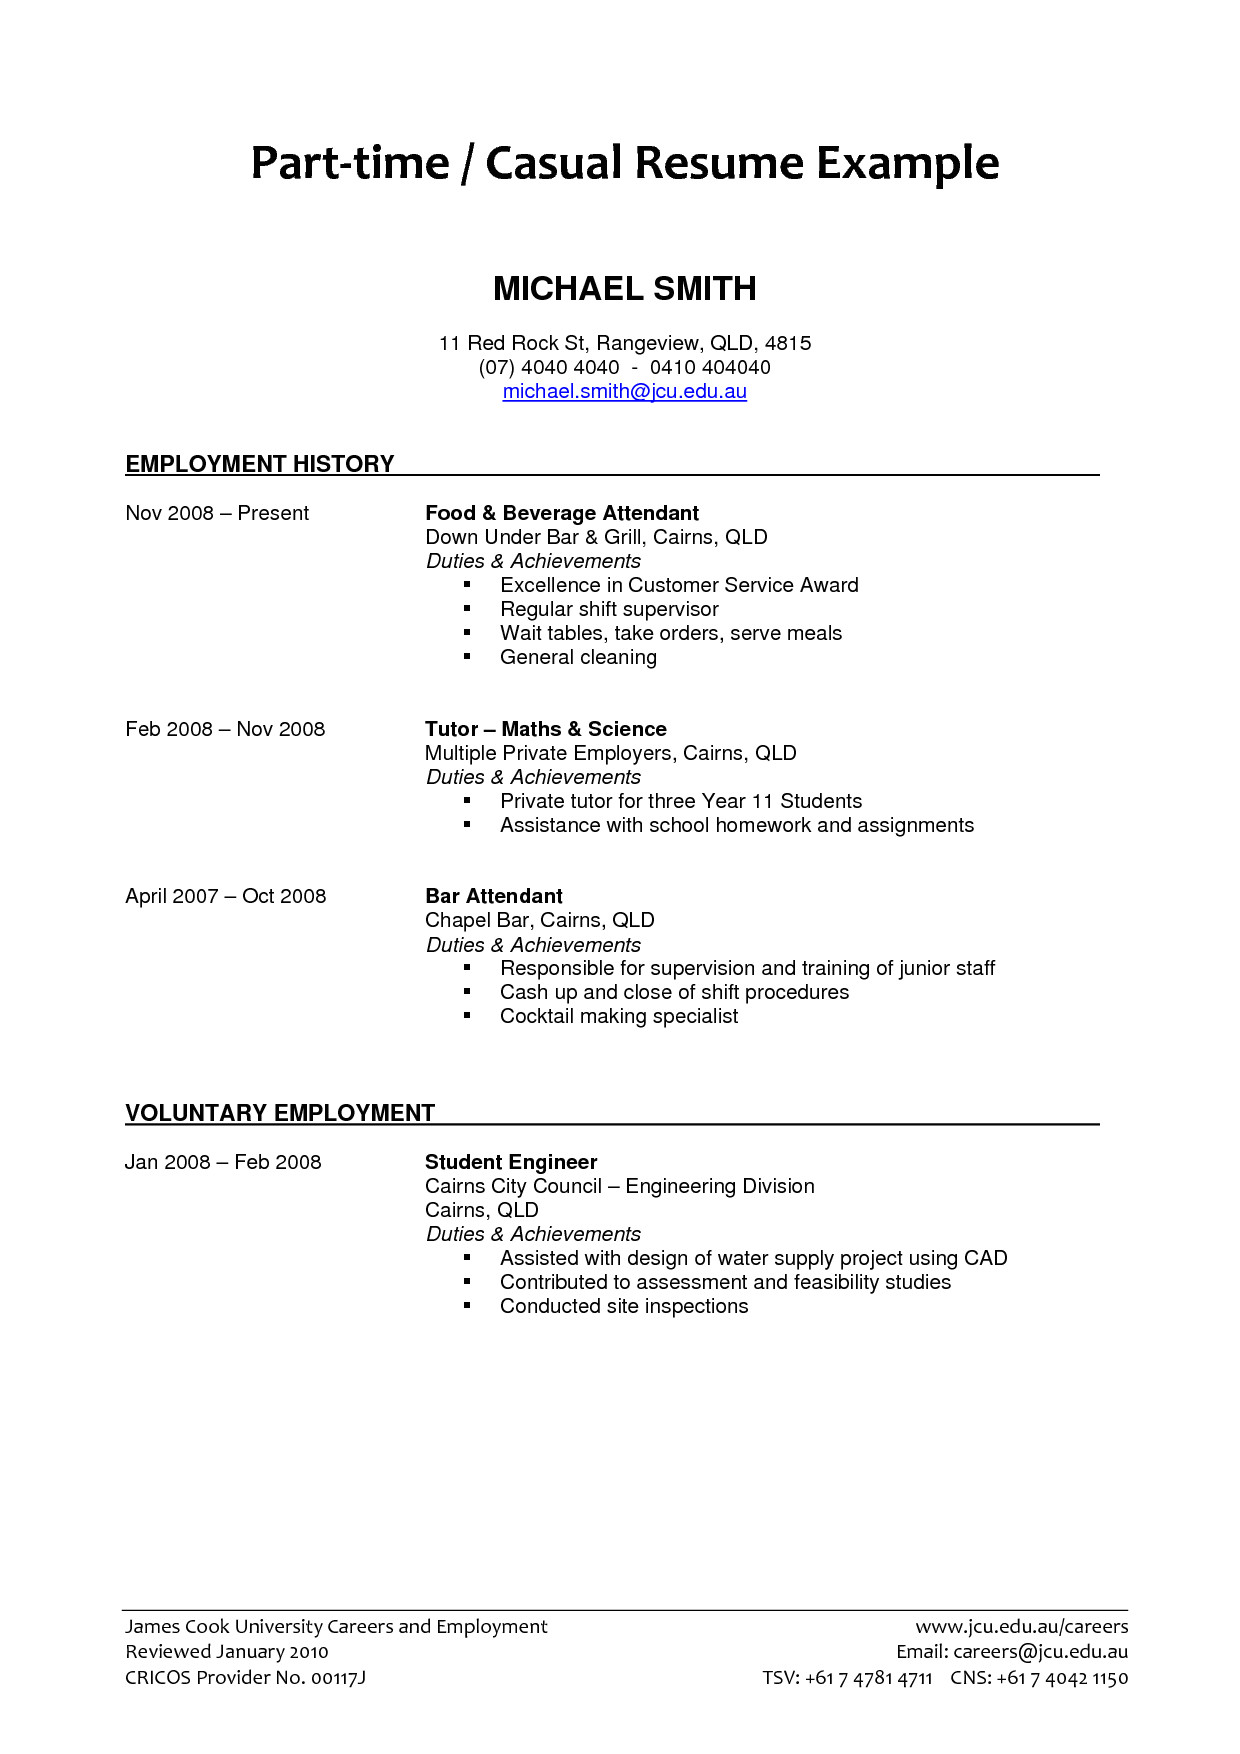 Sample Of Resume for Part Time Job by Student Part Time Job Resume Examples 2018 Resume Examples 2018